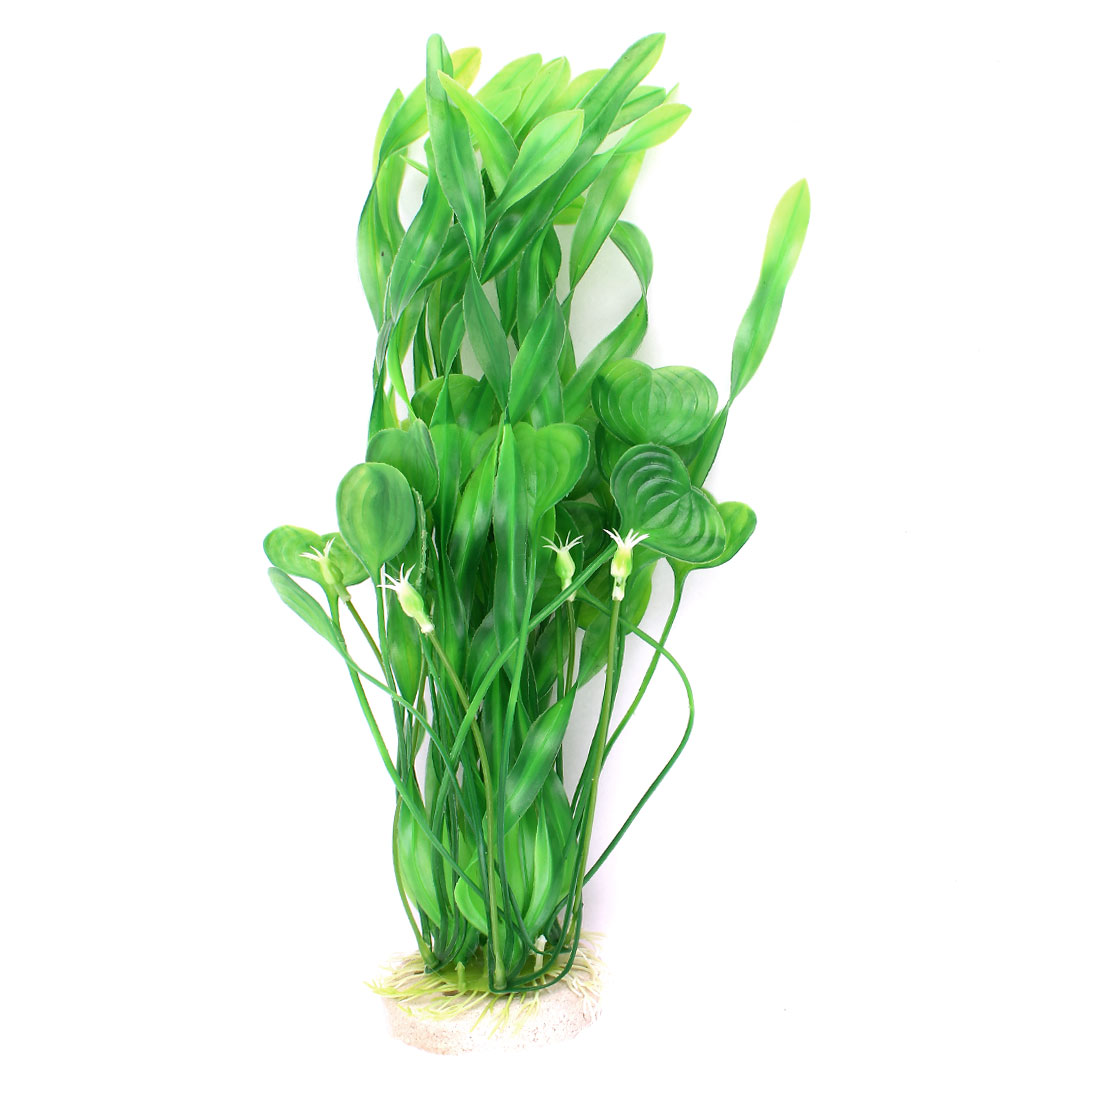 Fish Tank Decoration Simulational Plastic Underwater Water Plant Green 13.8-inch Height